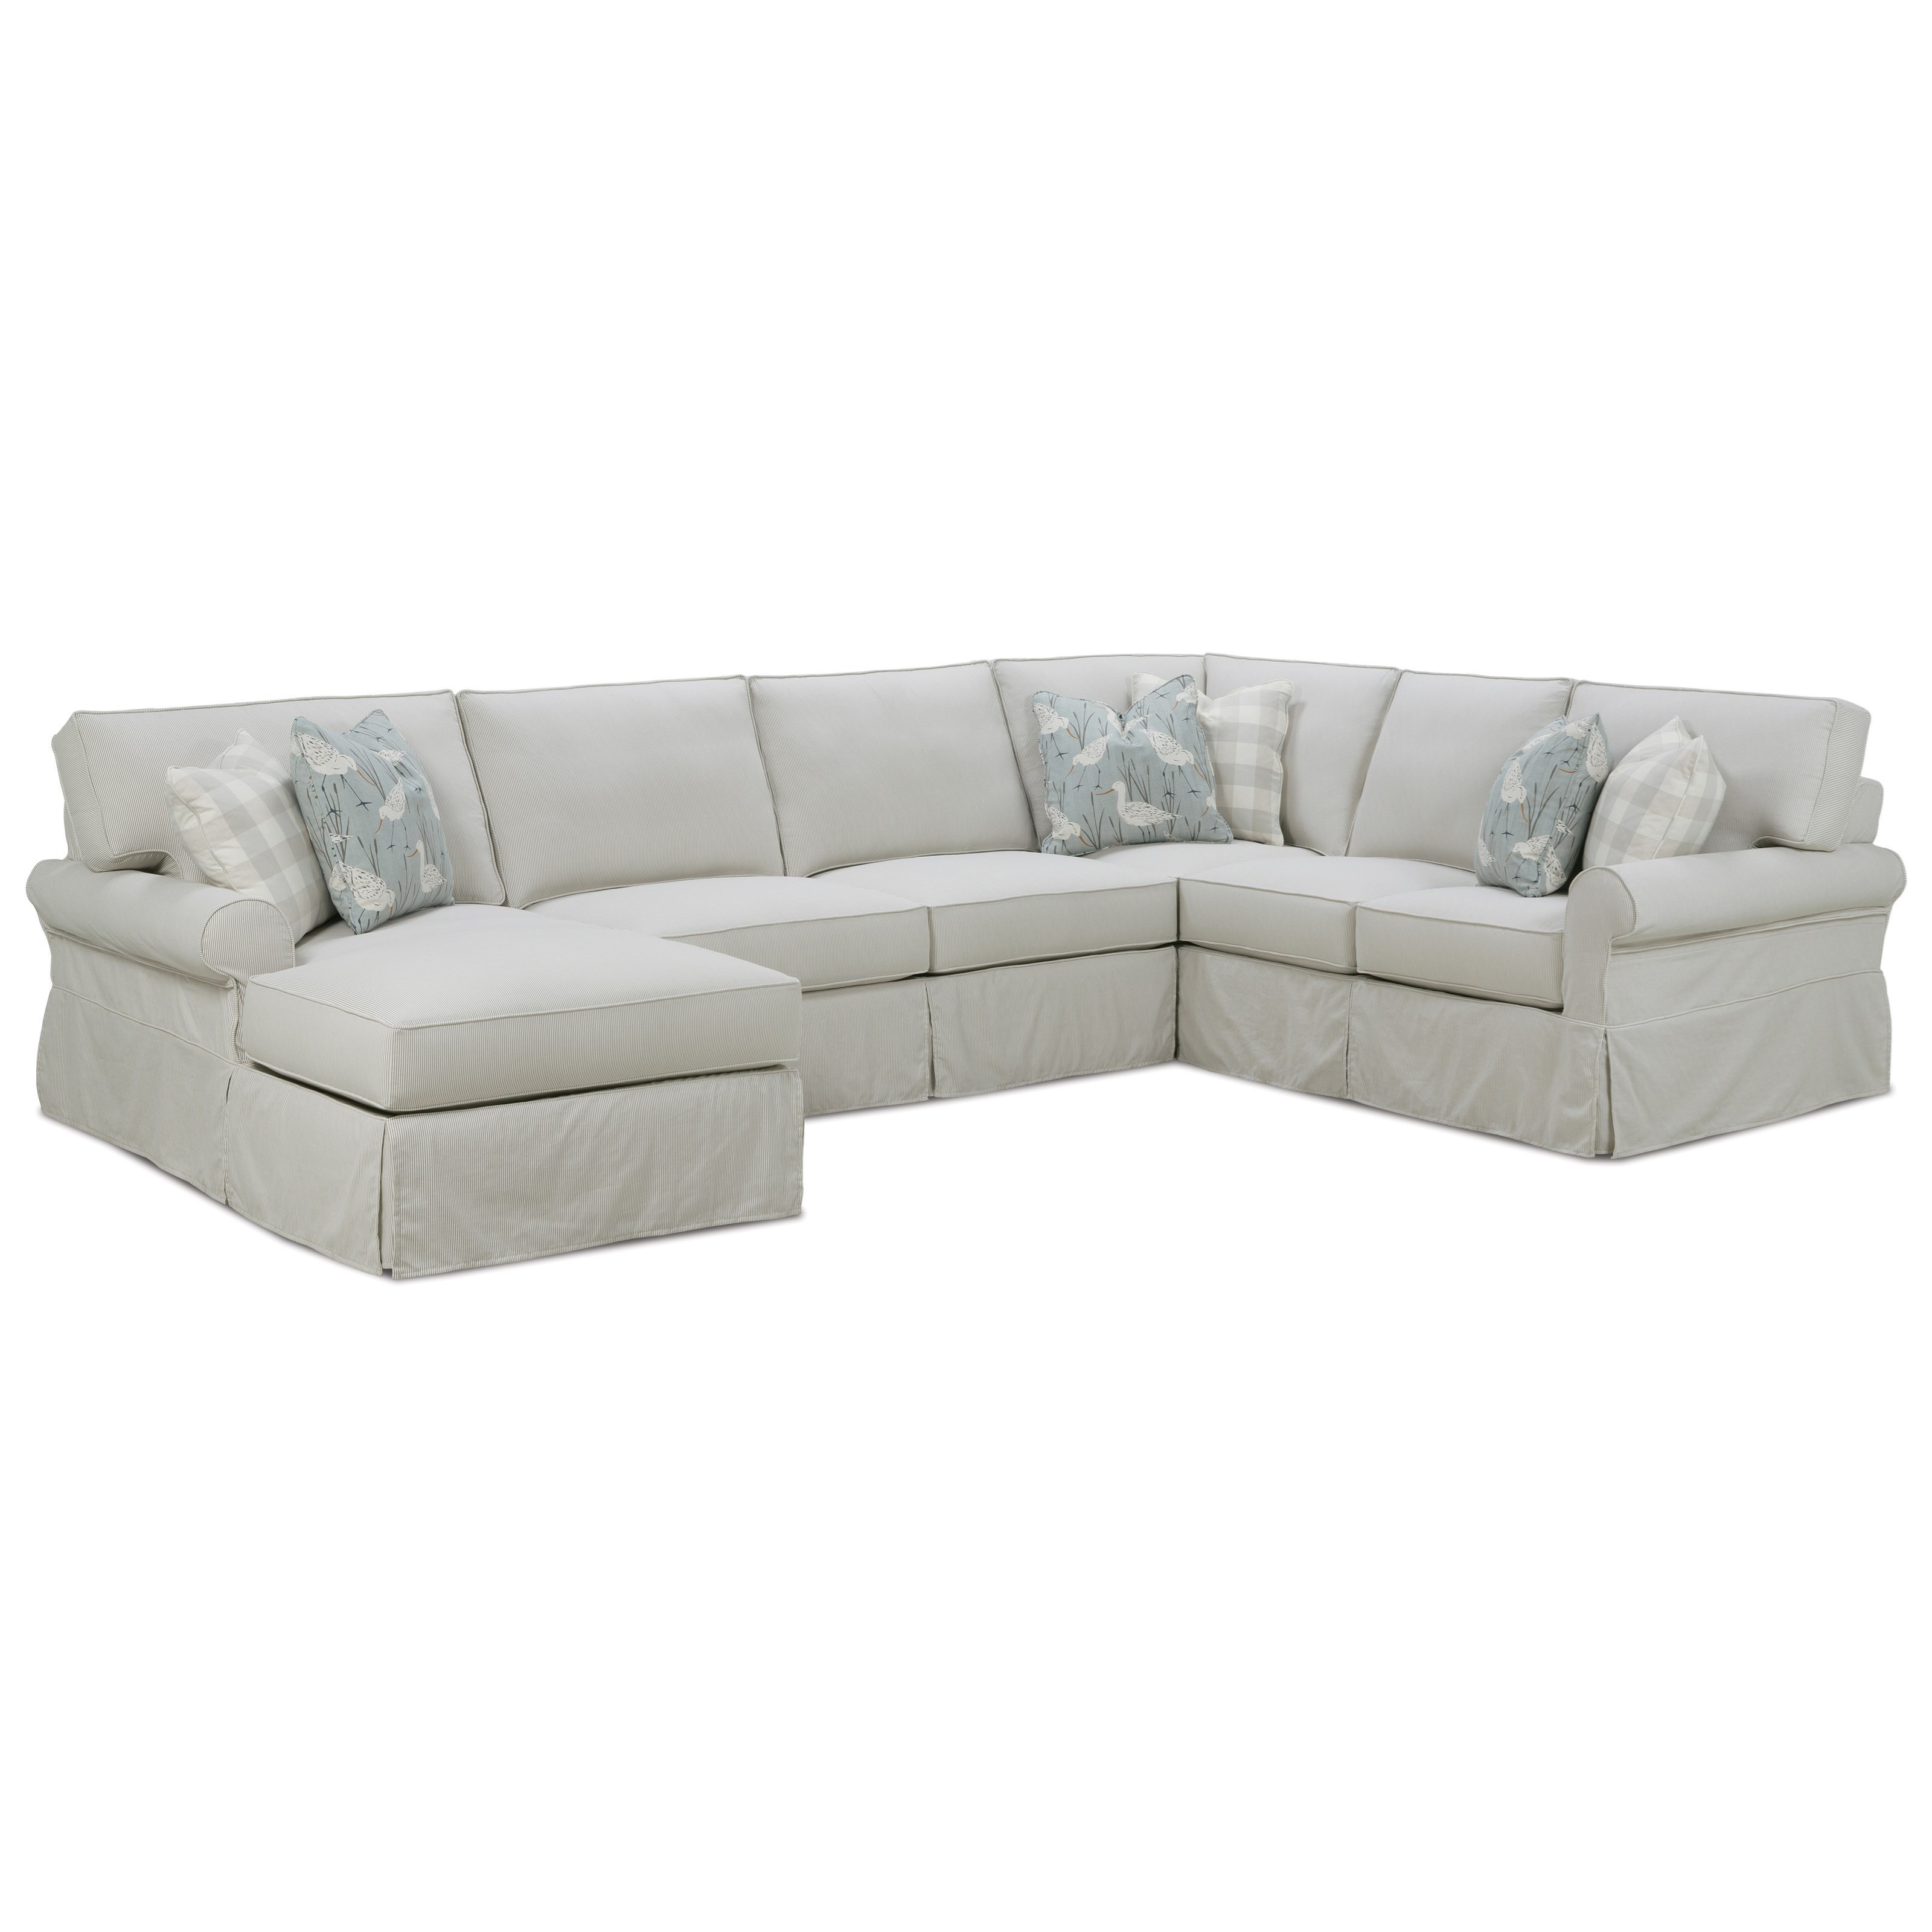 Rowe Easton Casual Sectional Sofa With Slipcover Belfort Furniture Sectional Sofas